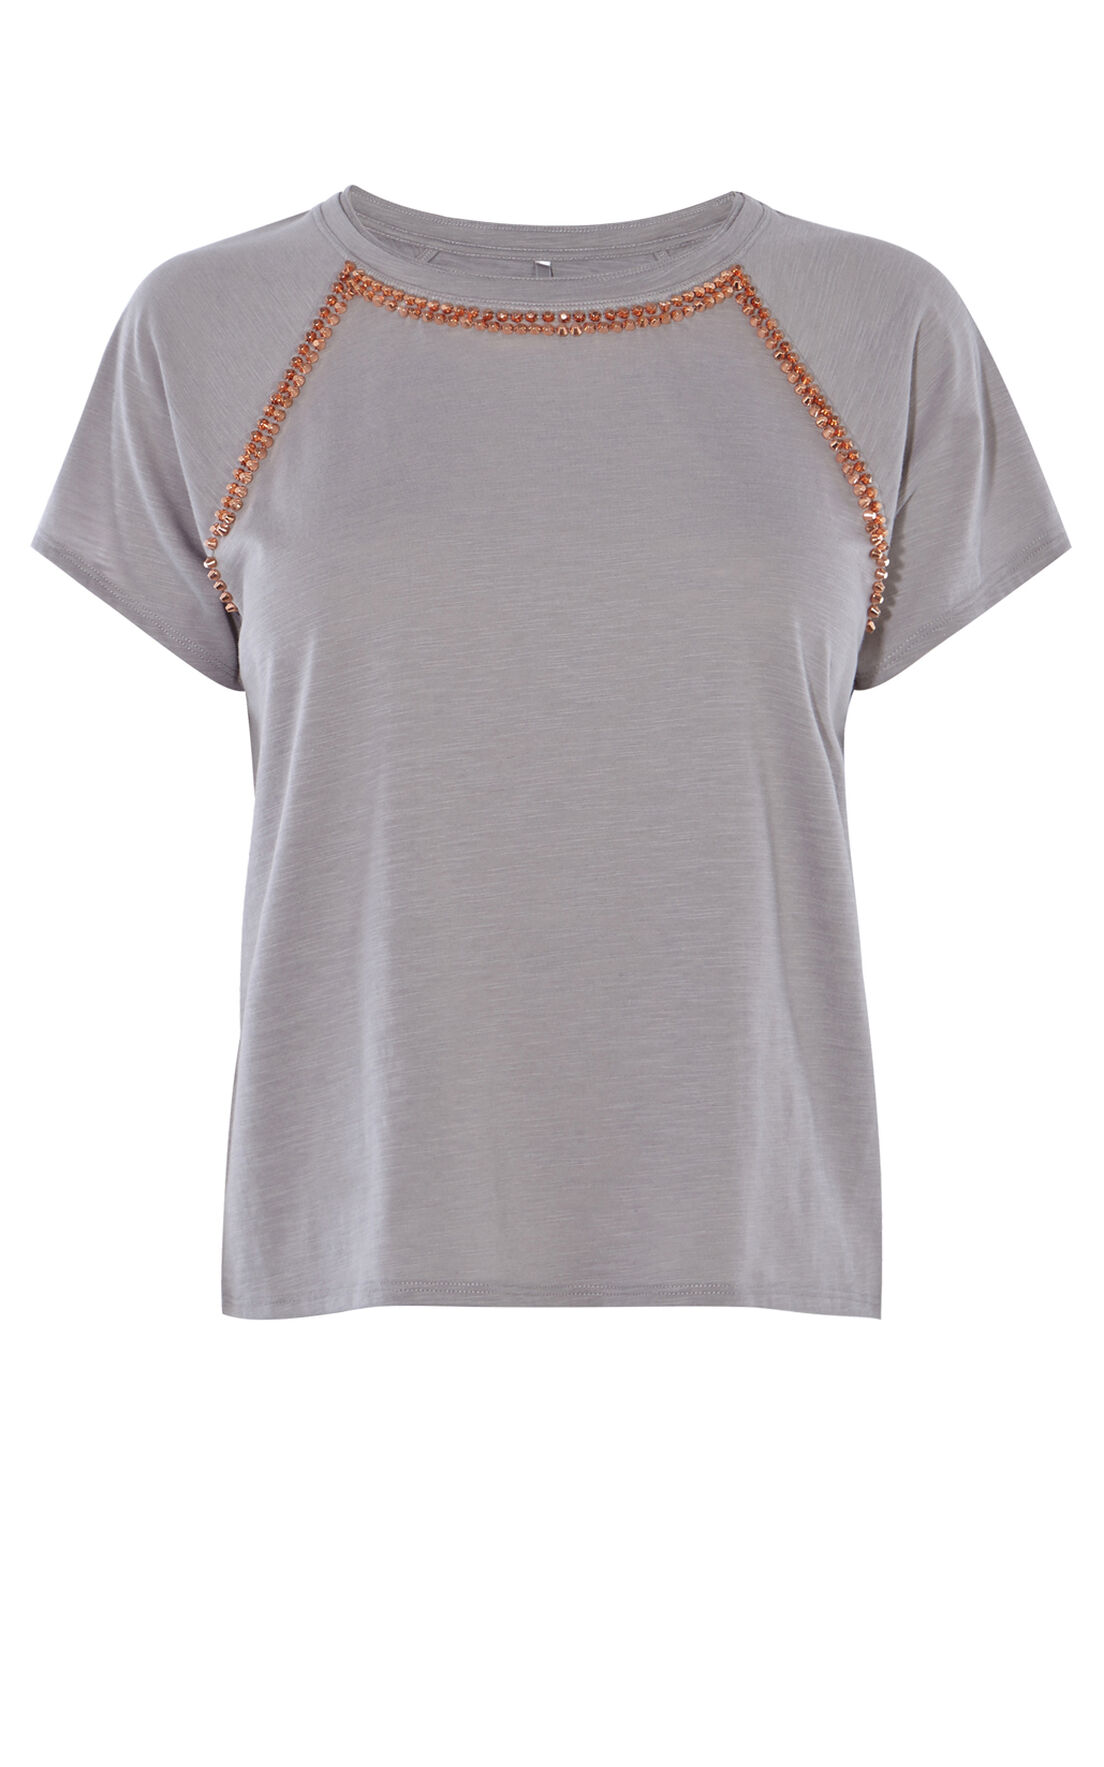 Karen Millen, STUDDED T-SHIRT Grey 0